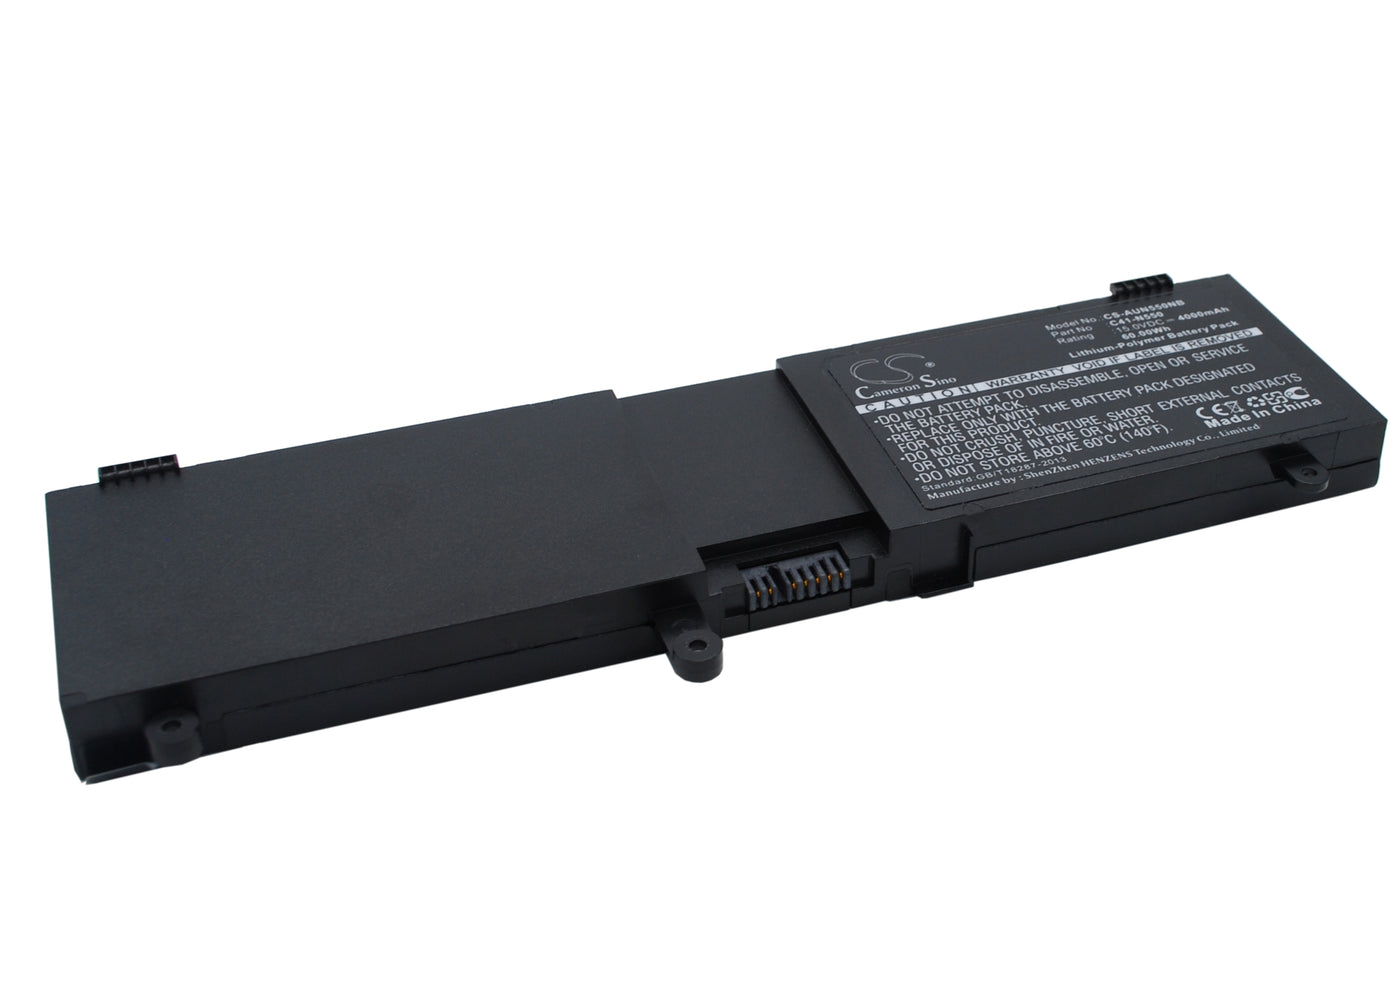 CS-AUN550NB Cameron Sino Battery